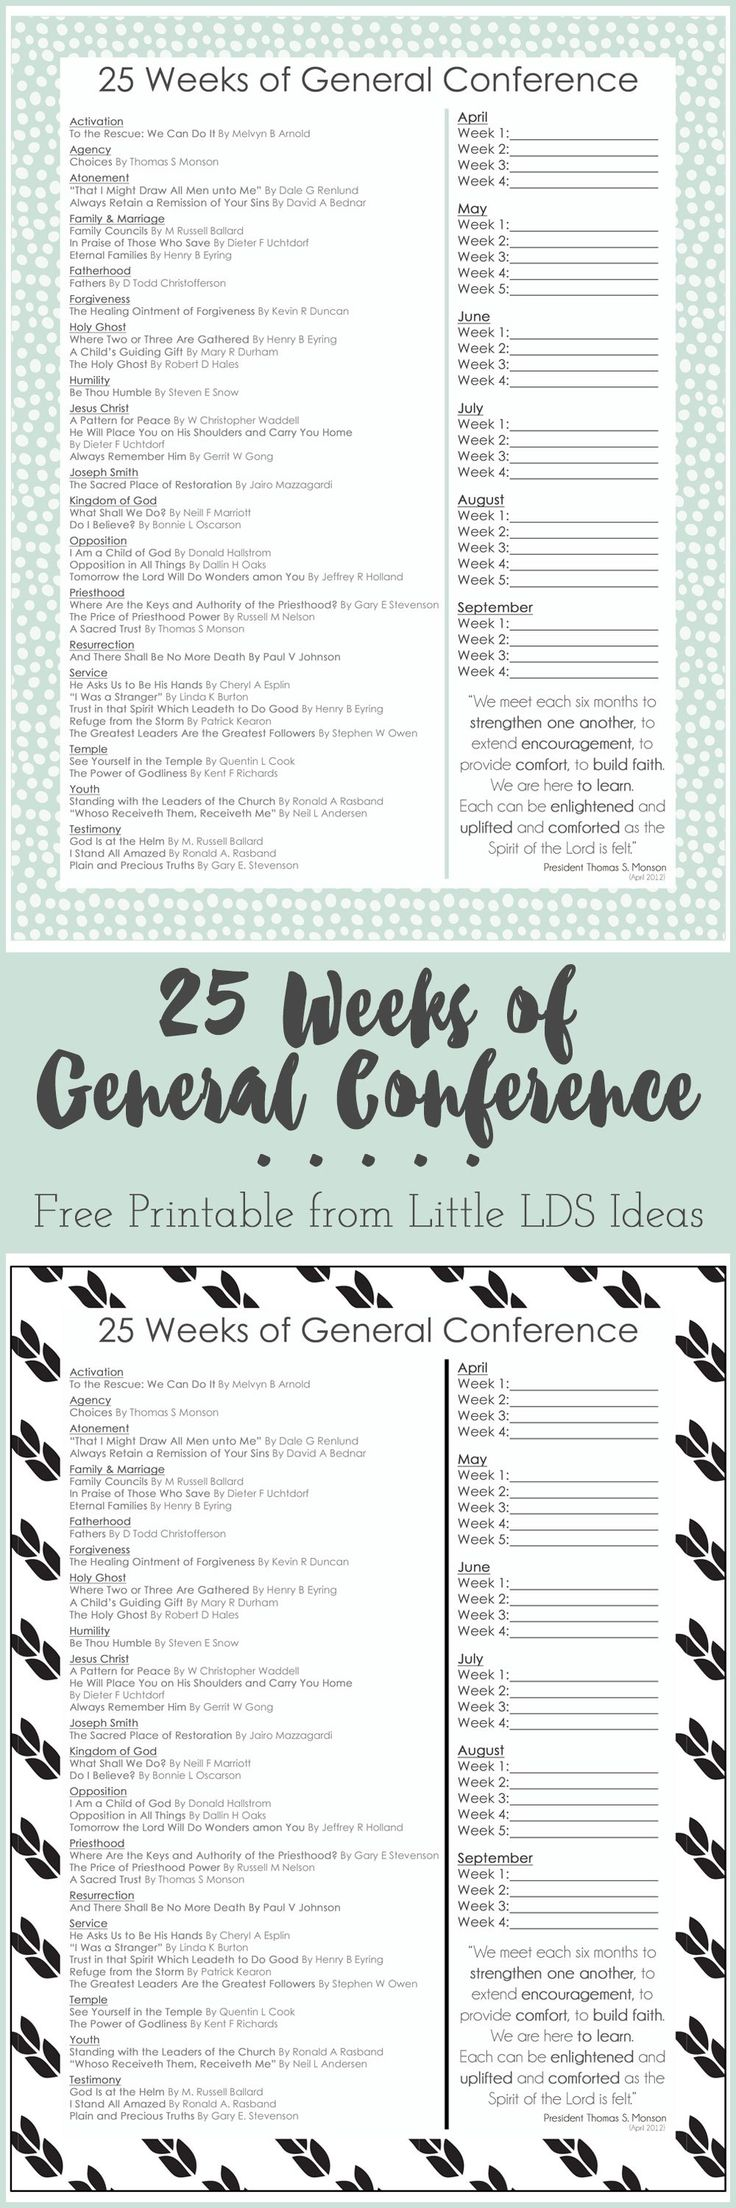 This FREE printable will help you study those amazing April 2016 General Conference talks. Stop by Little LDS Ideas to print yours out!